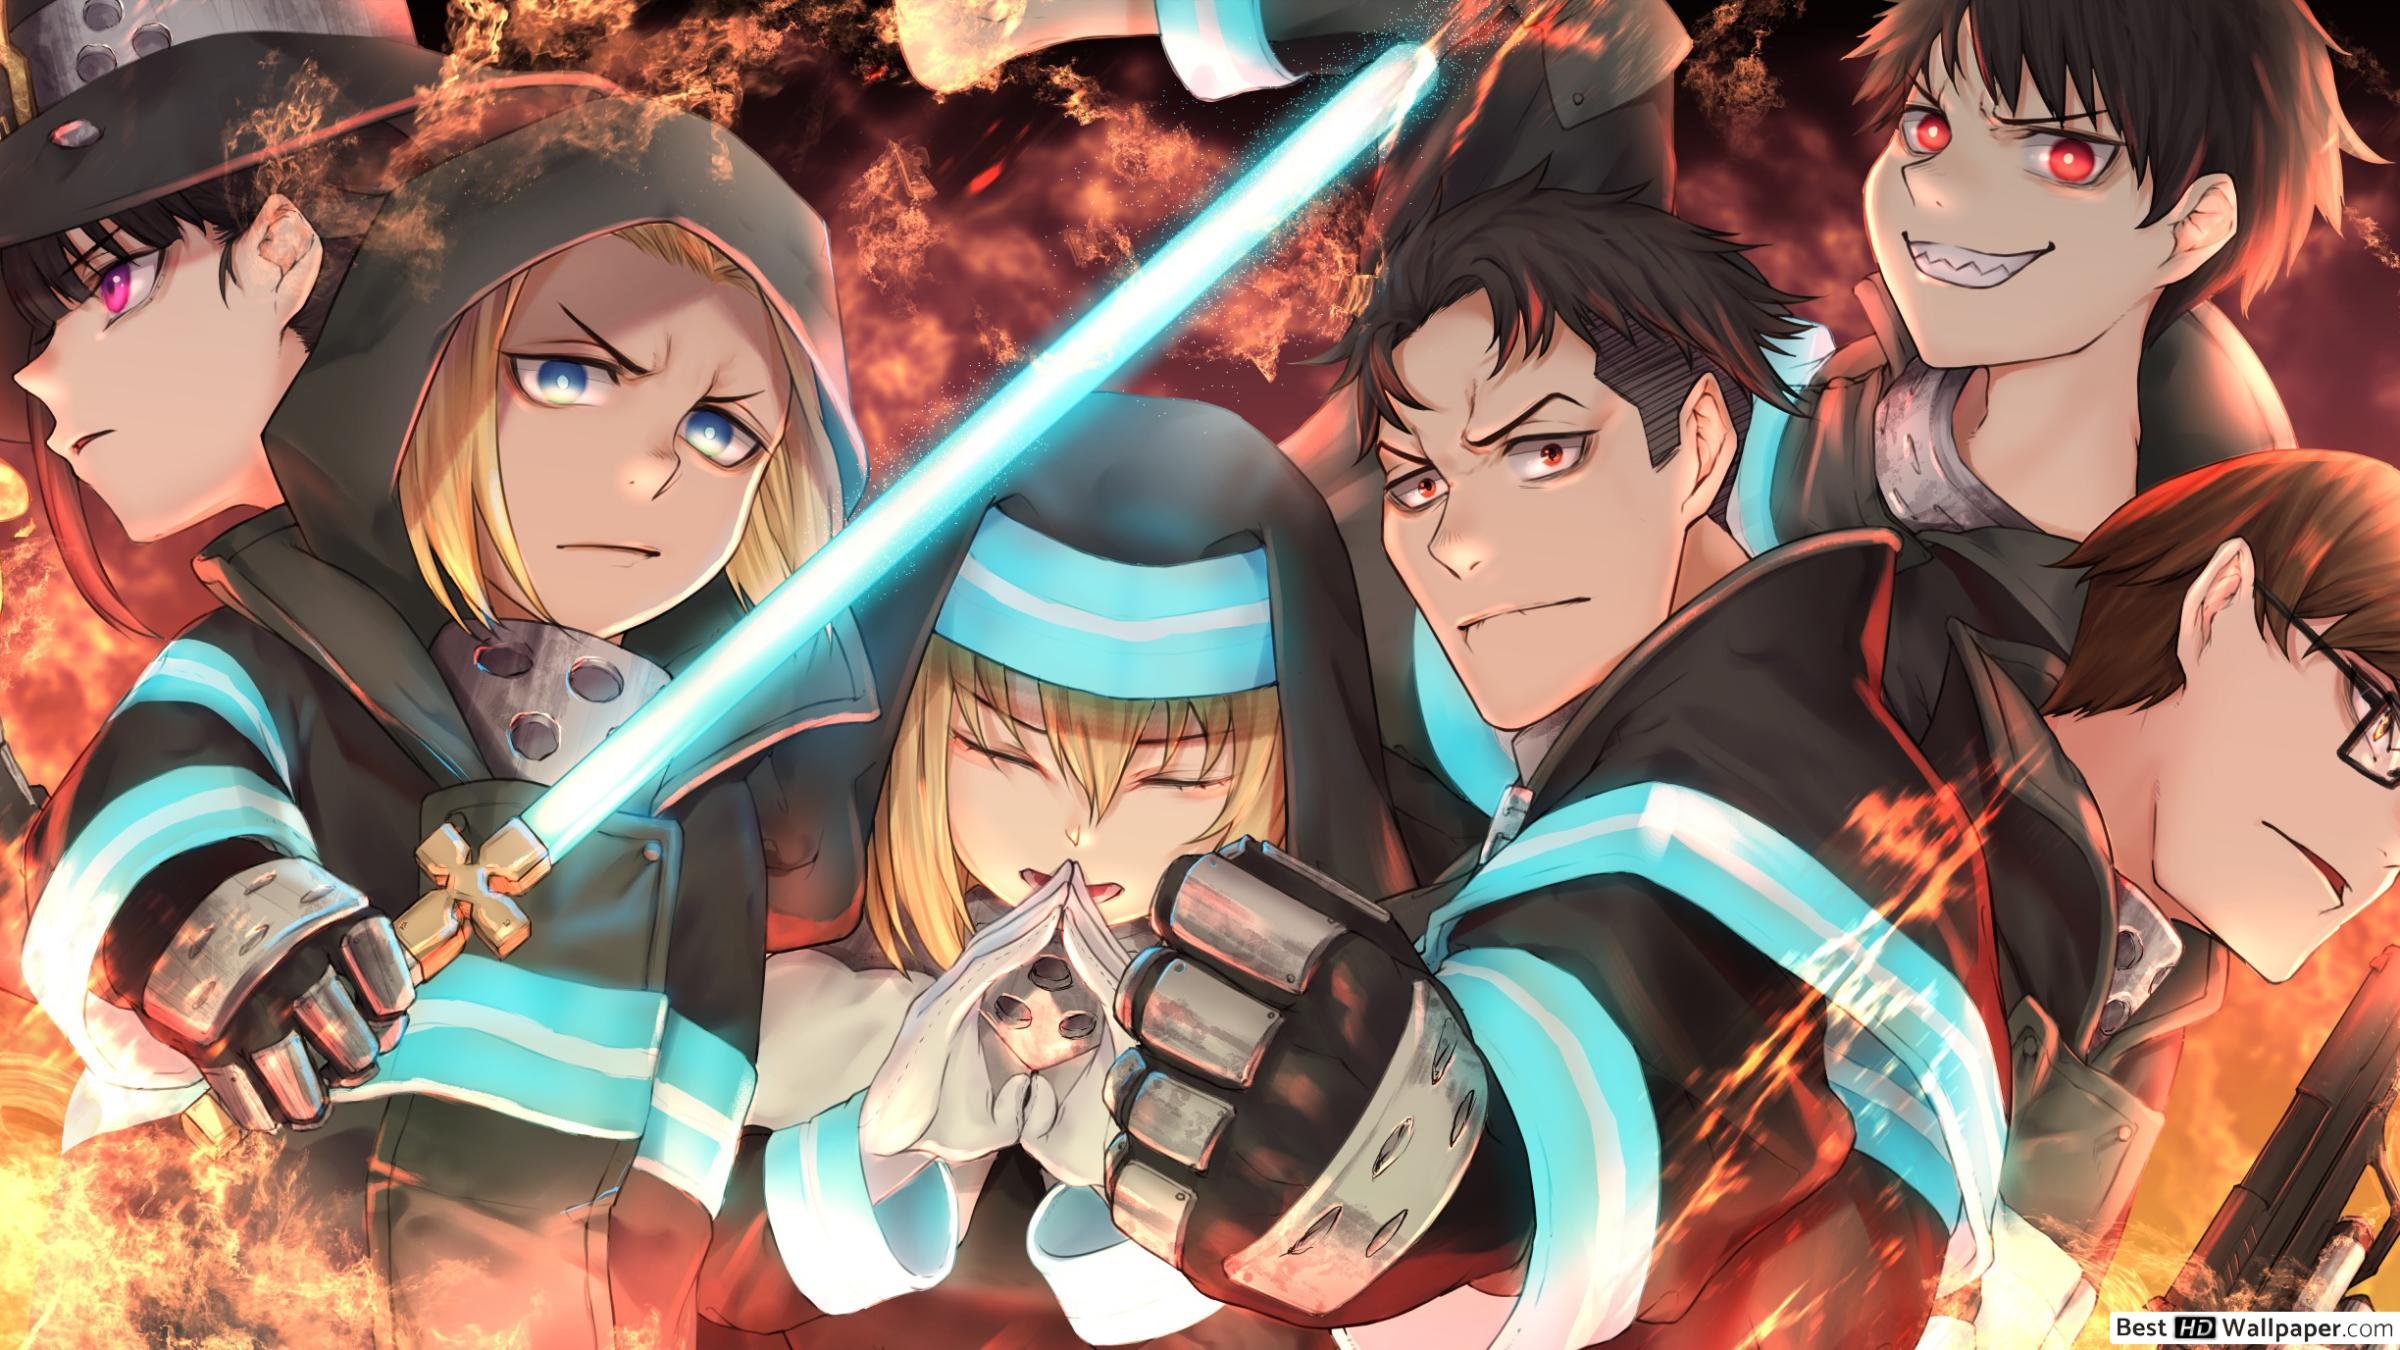 Fire Force Anime Wallpapers Top Free Fire Force Anime Backgrounds Wallpaperaccess The animation will make the flames leap but you can't be harmed. fire force anime wallpapers top free